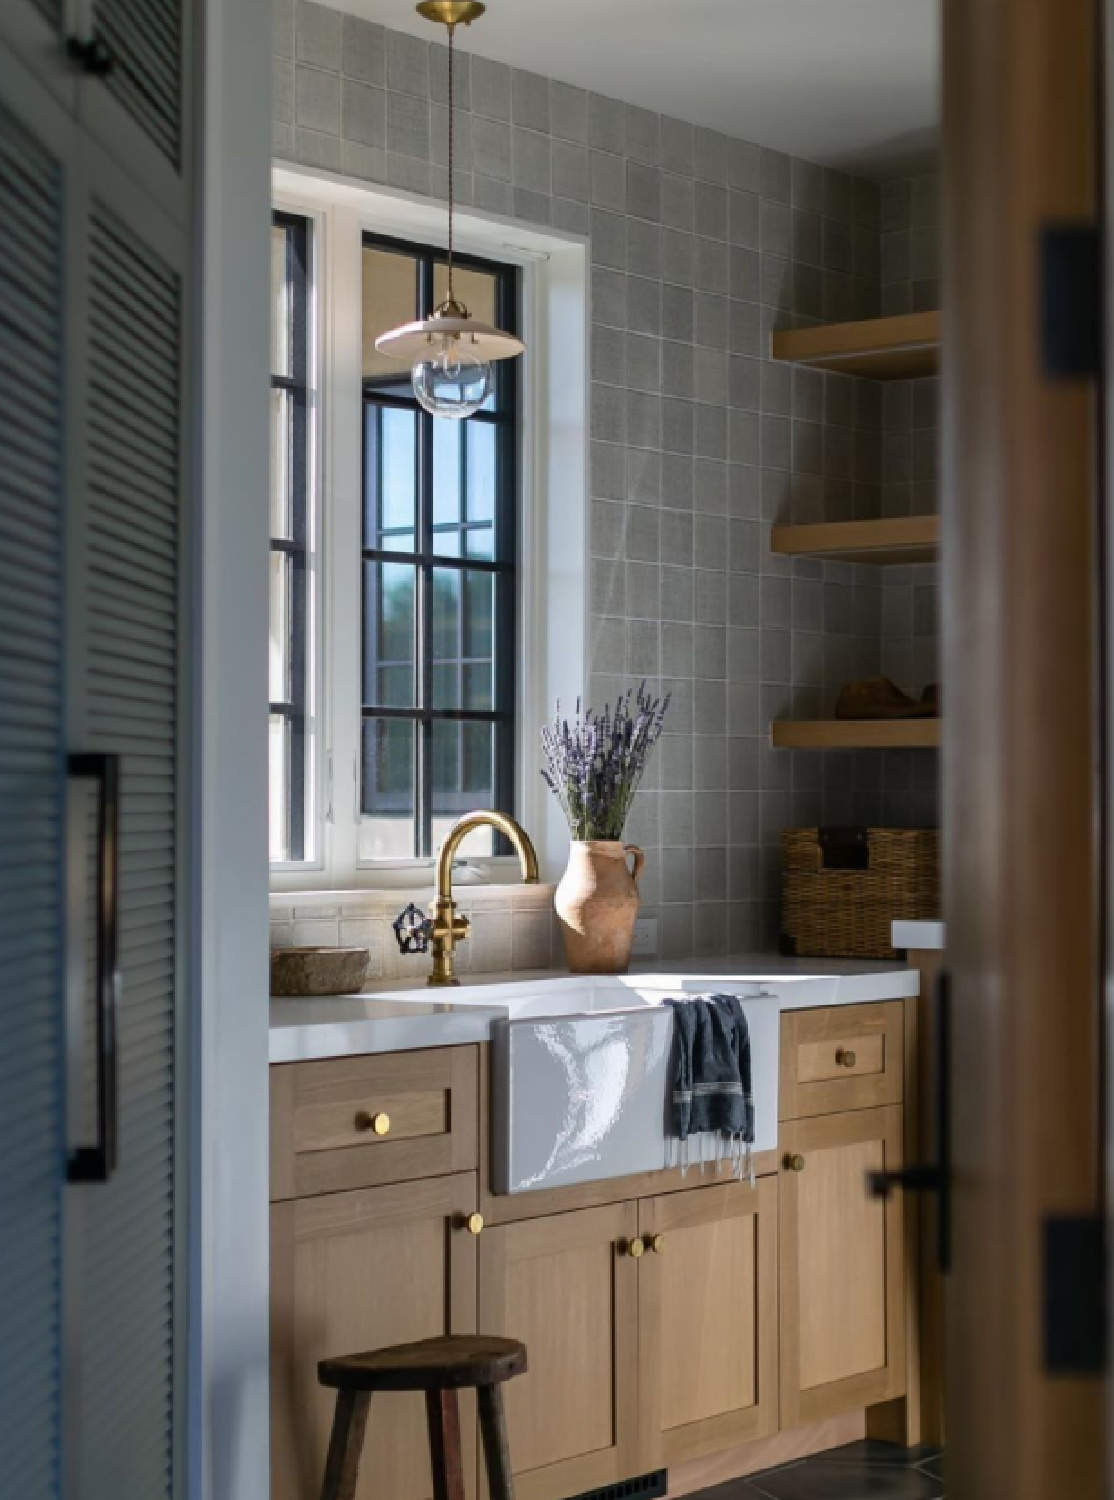 Beautiful classic laundry room with farm sink, windows, wood cabinets, open shelves, and brass hardware - @blackbanddesign #laundryroomdesign